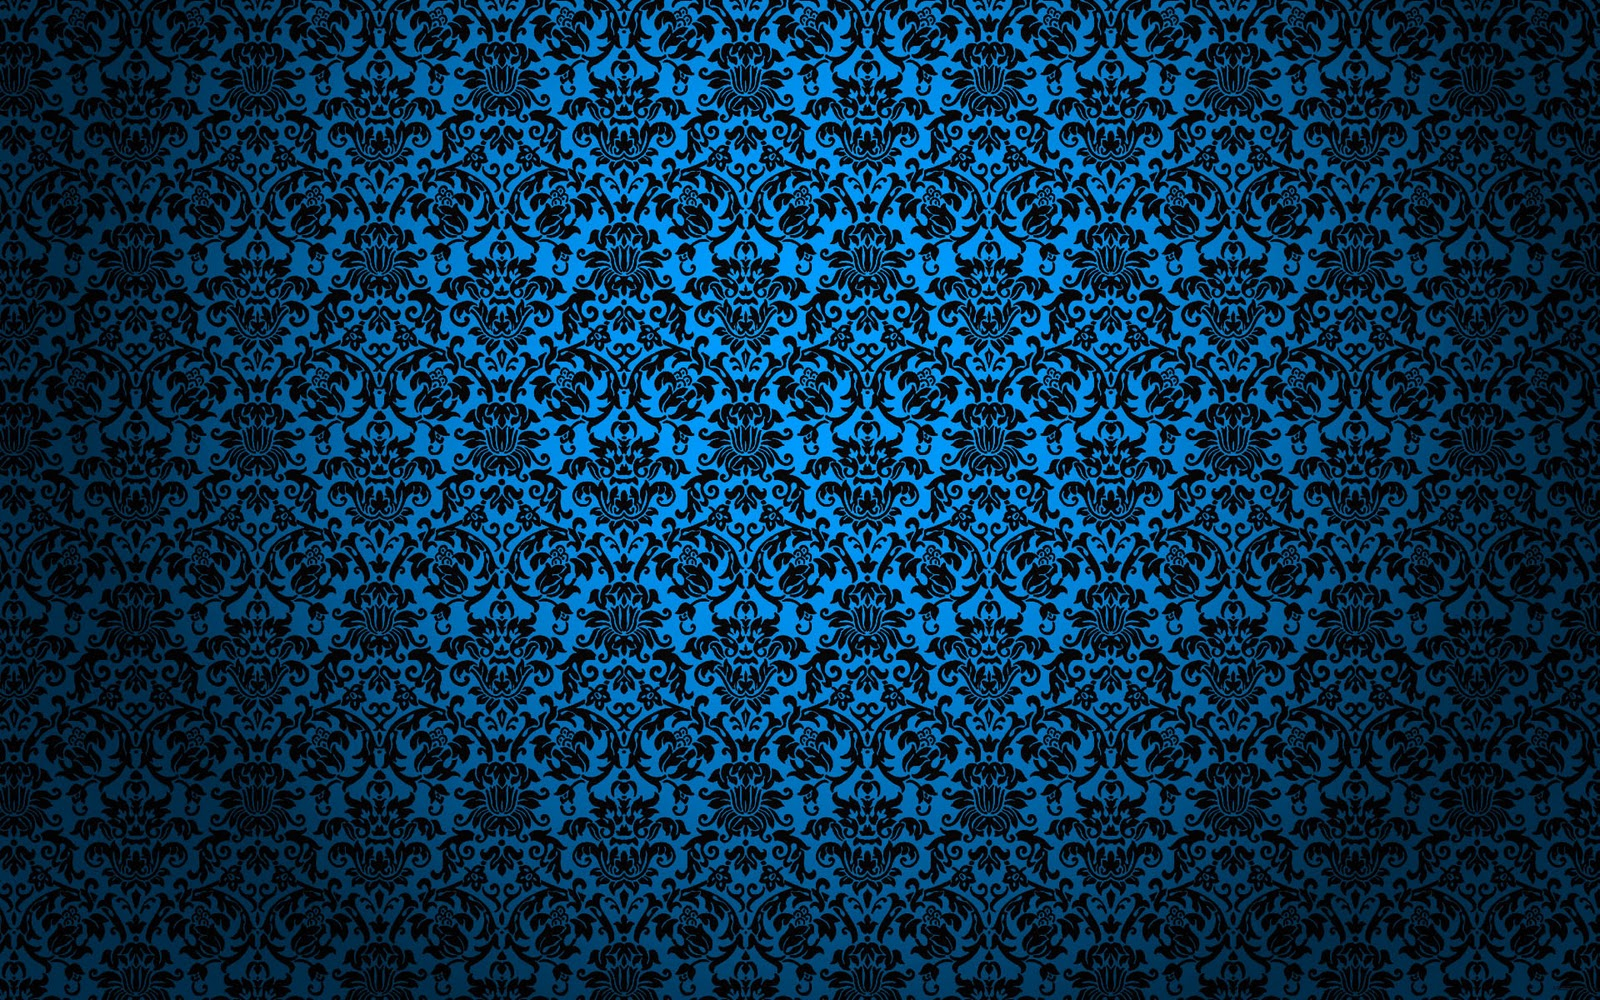 HD Blue Texture Wallpapers | Hd Wallpapers